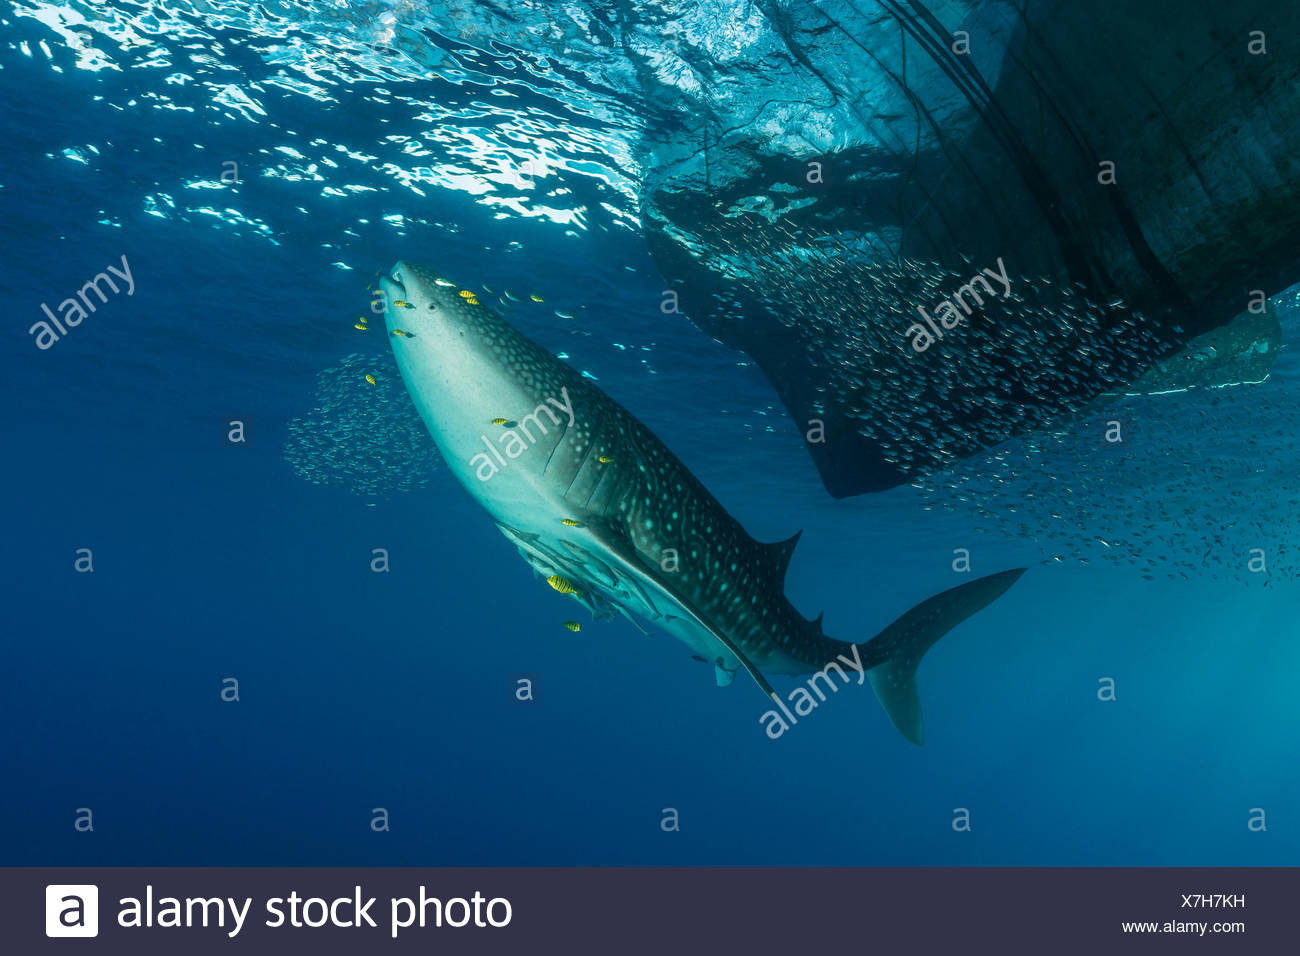 Whale Shark underneath Fishing Platform, Rhincodon typus, Cenderawasih Bay, West Papua, Indonesia - Stock Image